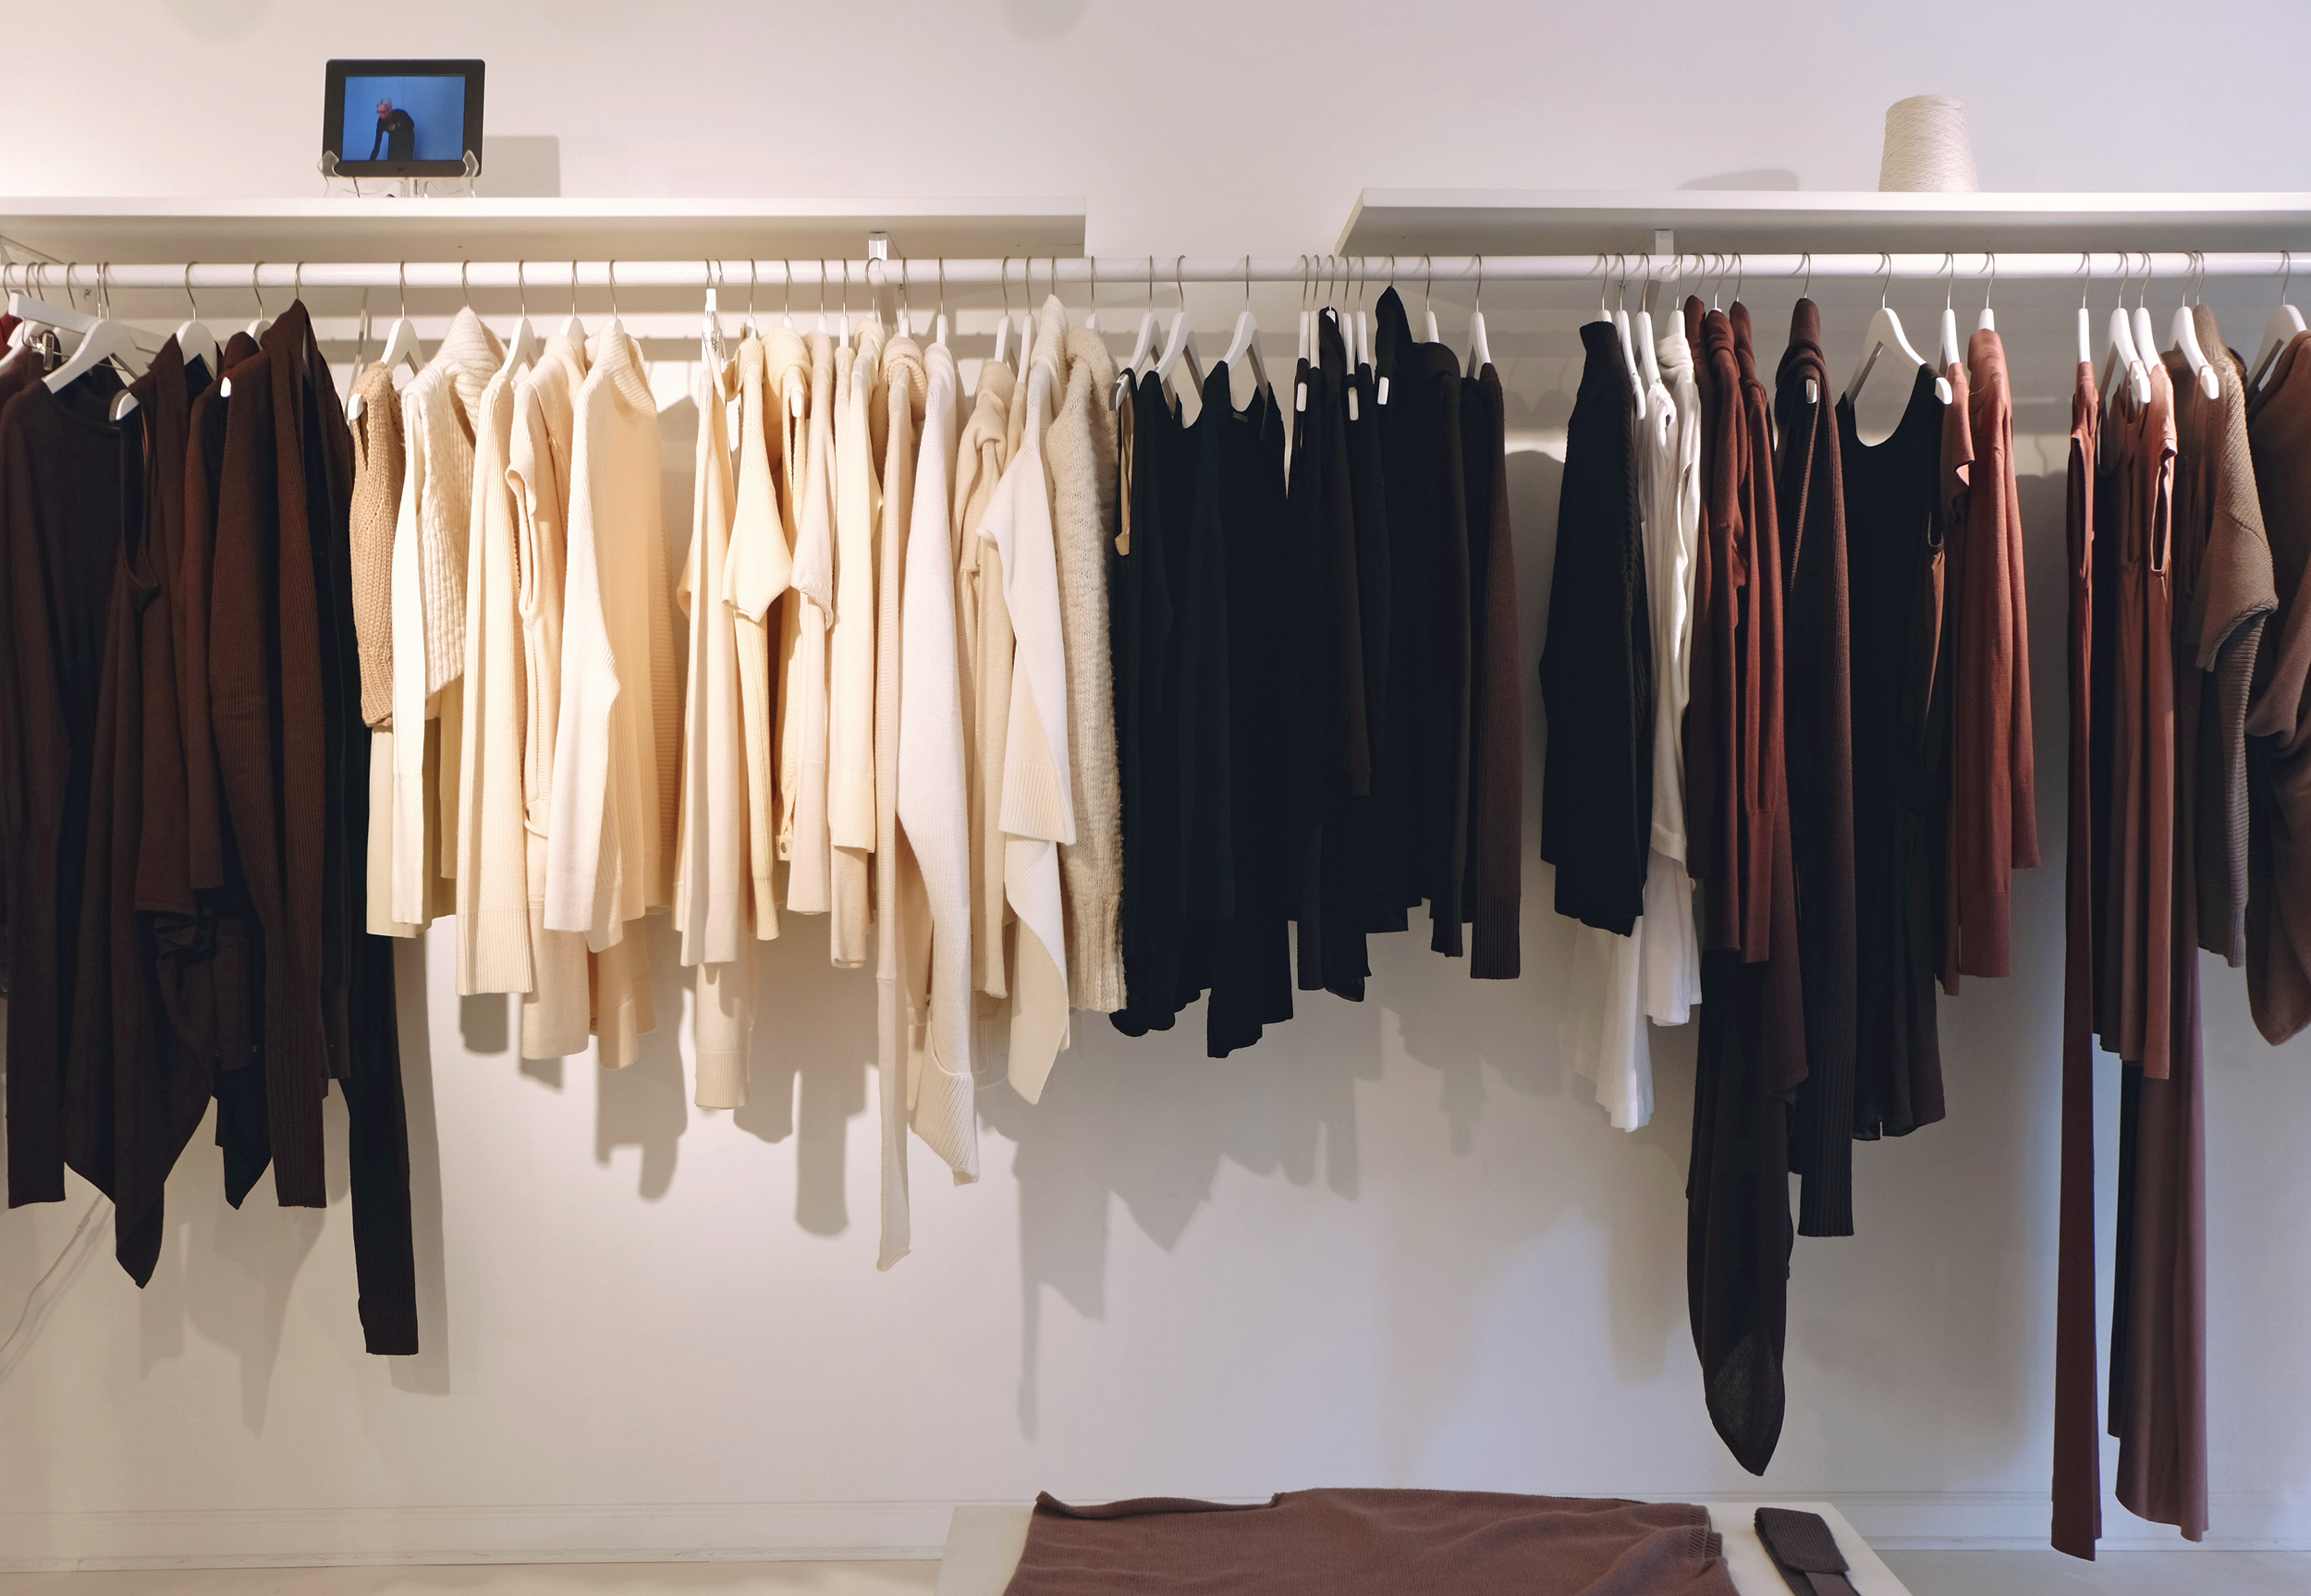 NFP studio  / 215 Mulberry Street. New York, NY 10012 / 212-775-8000  I only recently discovered this place.It's called  NFP for New Form & Perspective, a knitwear line where each garment can be worn multiple ways, ie. a sweater that turns into a skirt, or a vest, and so on.It's still fairly new, but an idea worth venturing into.